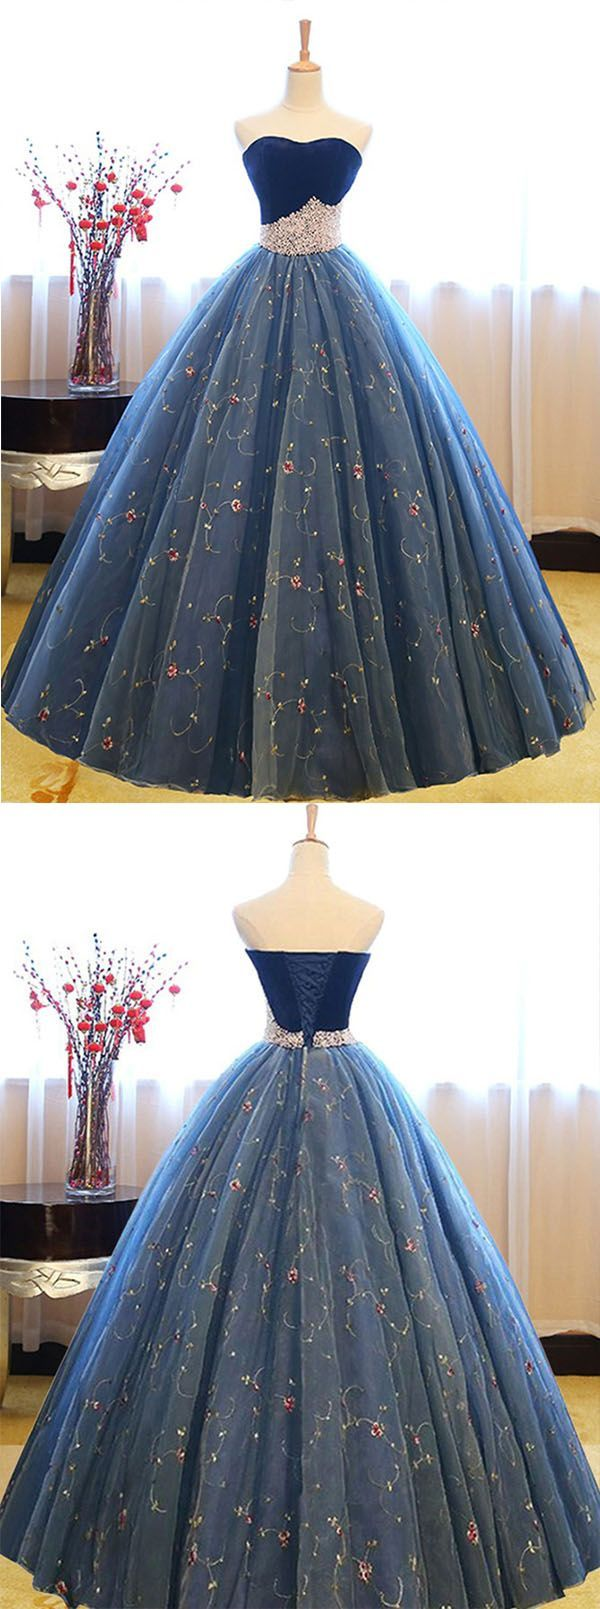 Dusty blue ball gown prom dresses tulle sweatheart ball gown formal